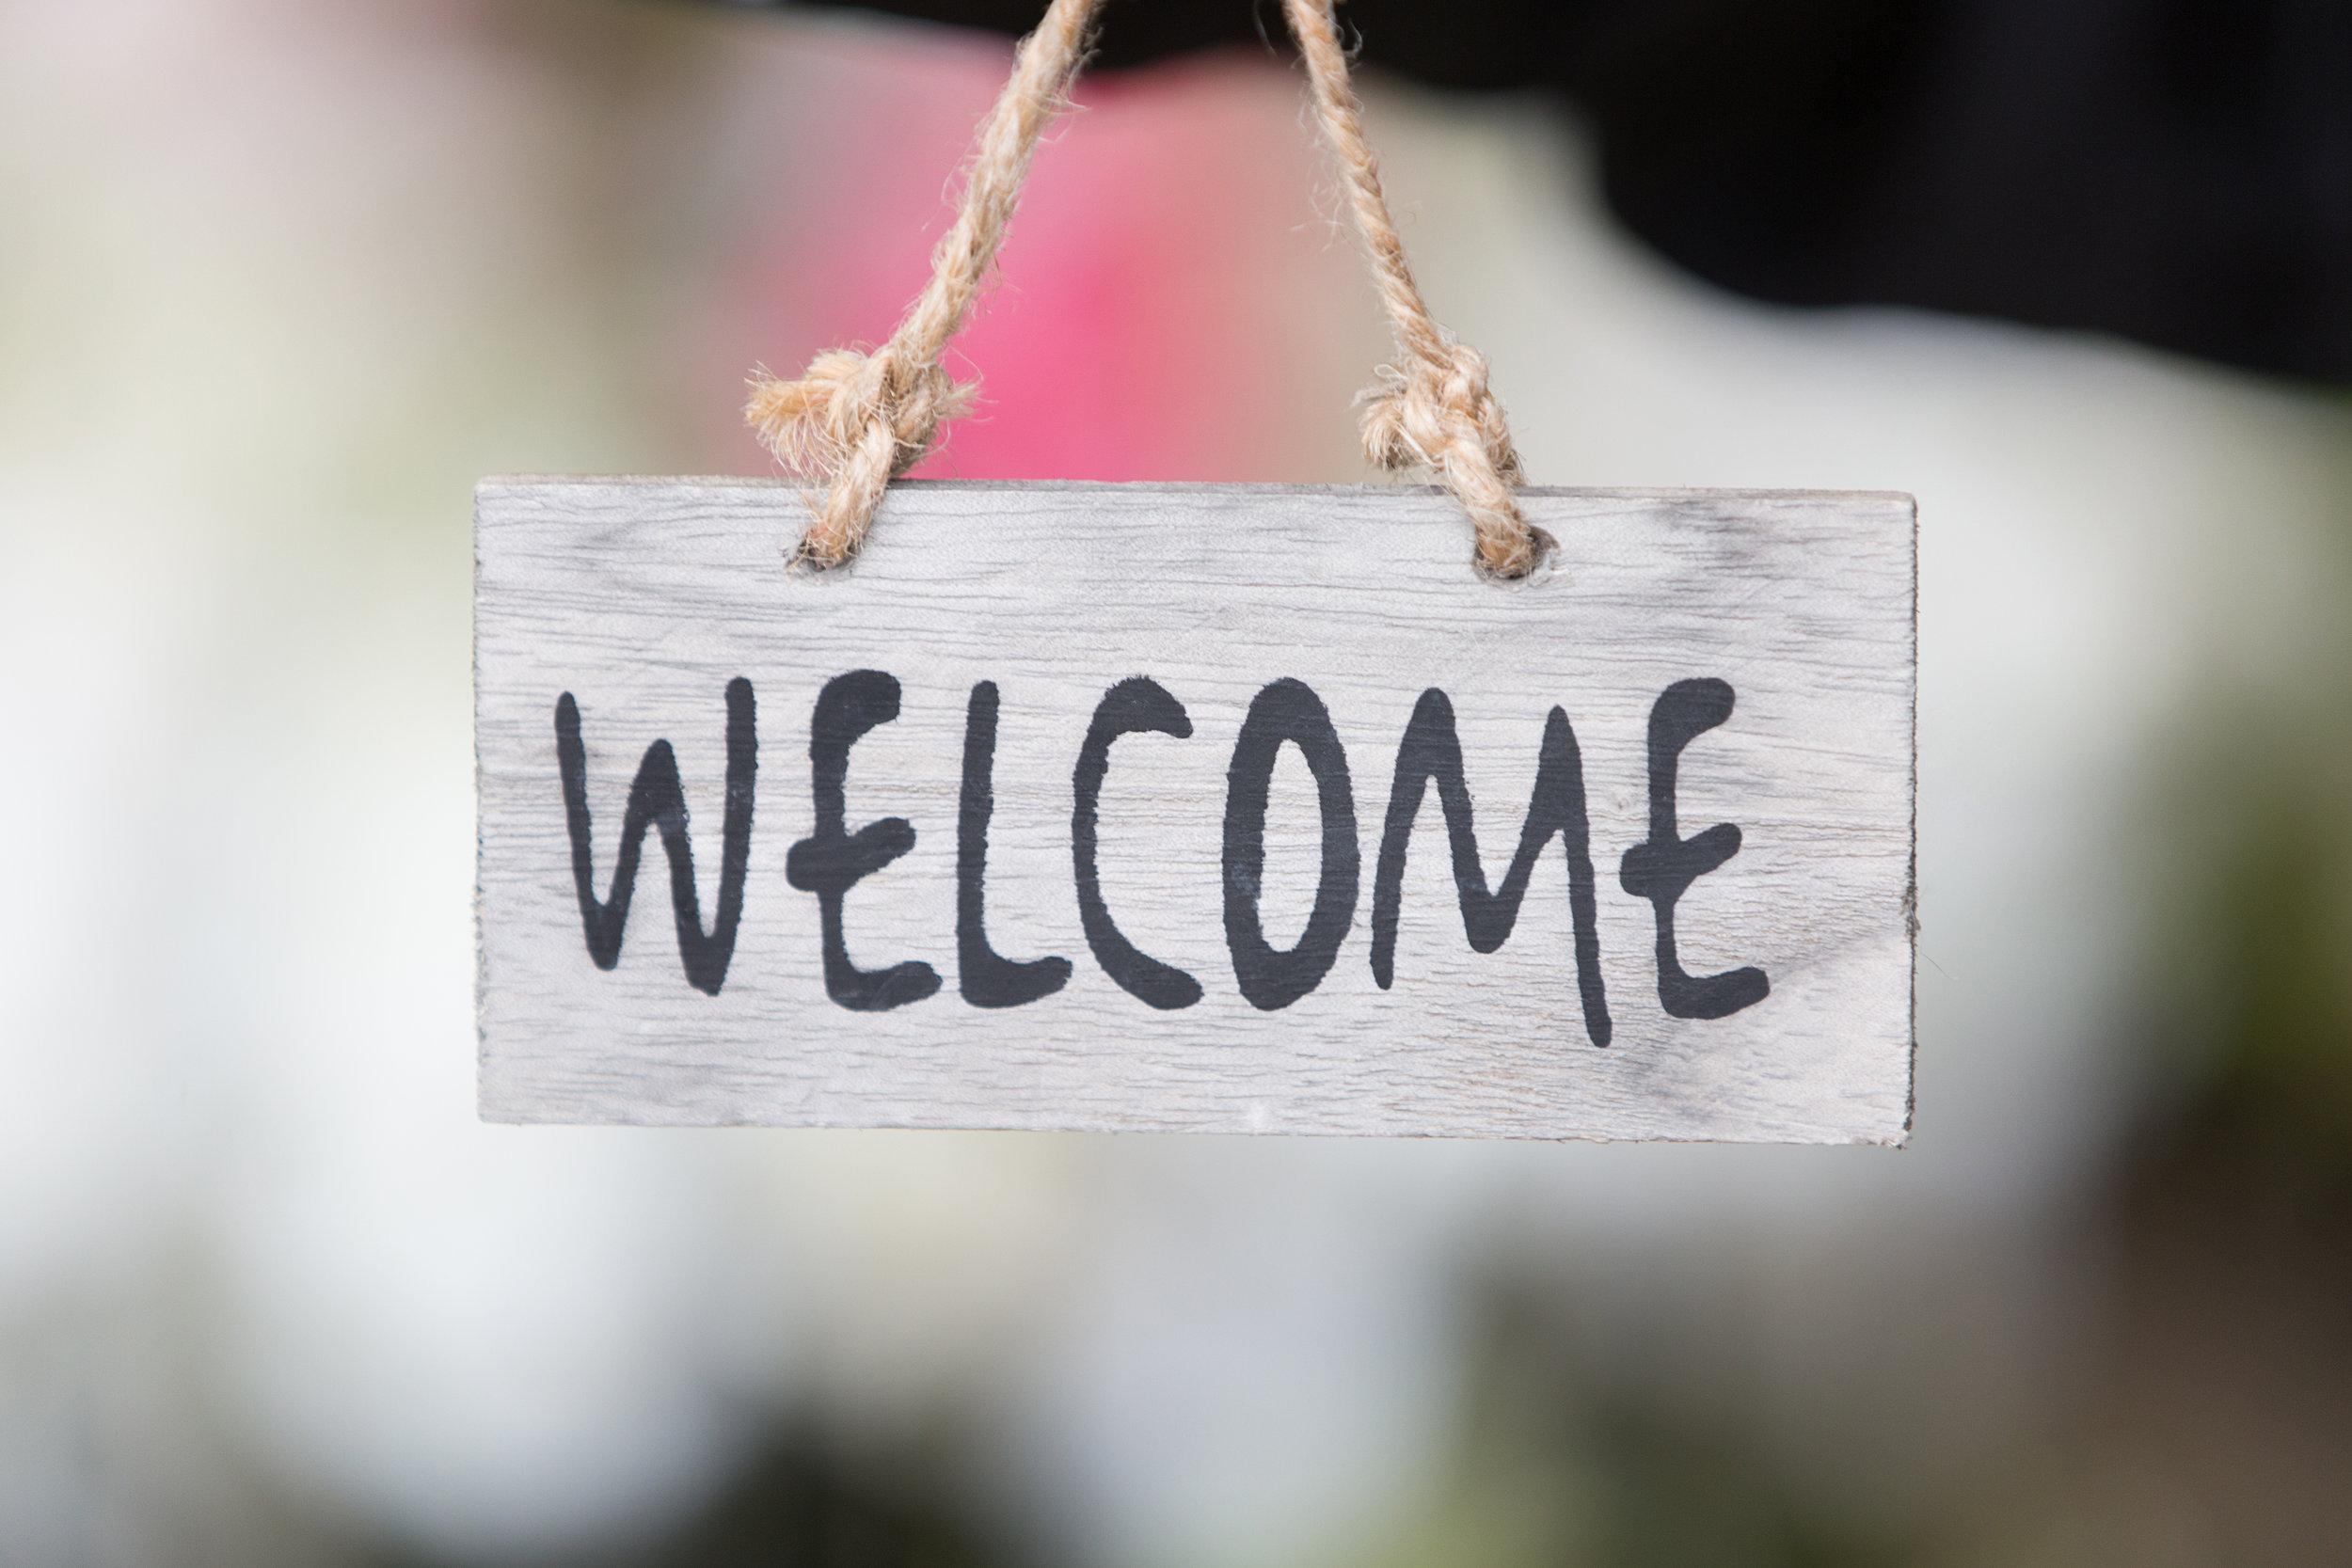 I'm New - Are you visiting or new to our church?